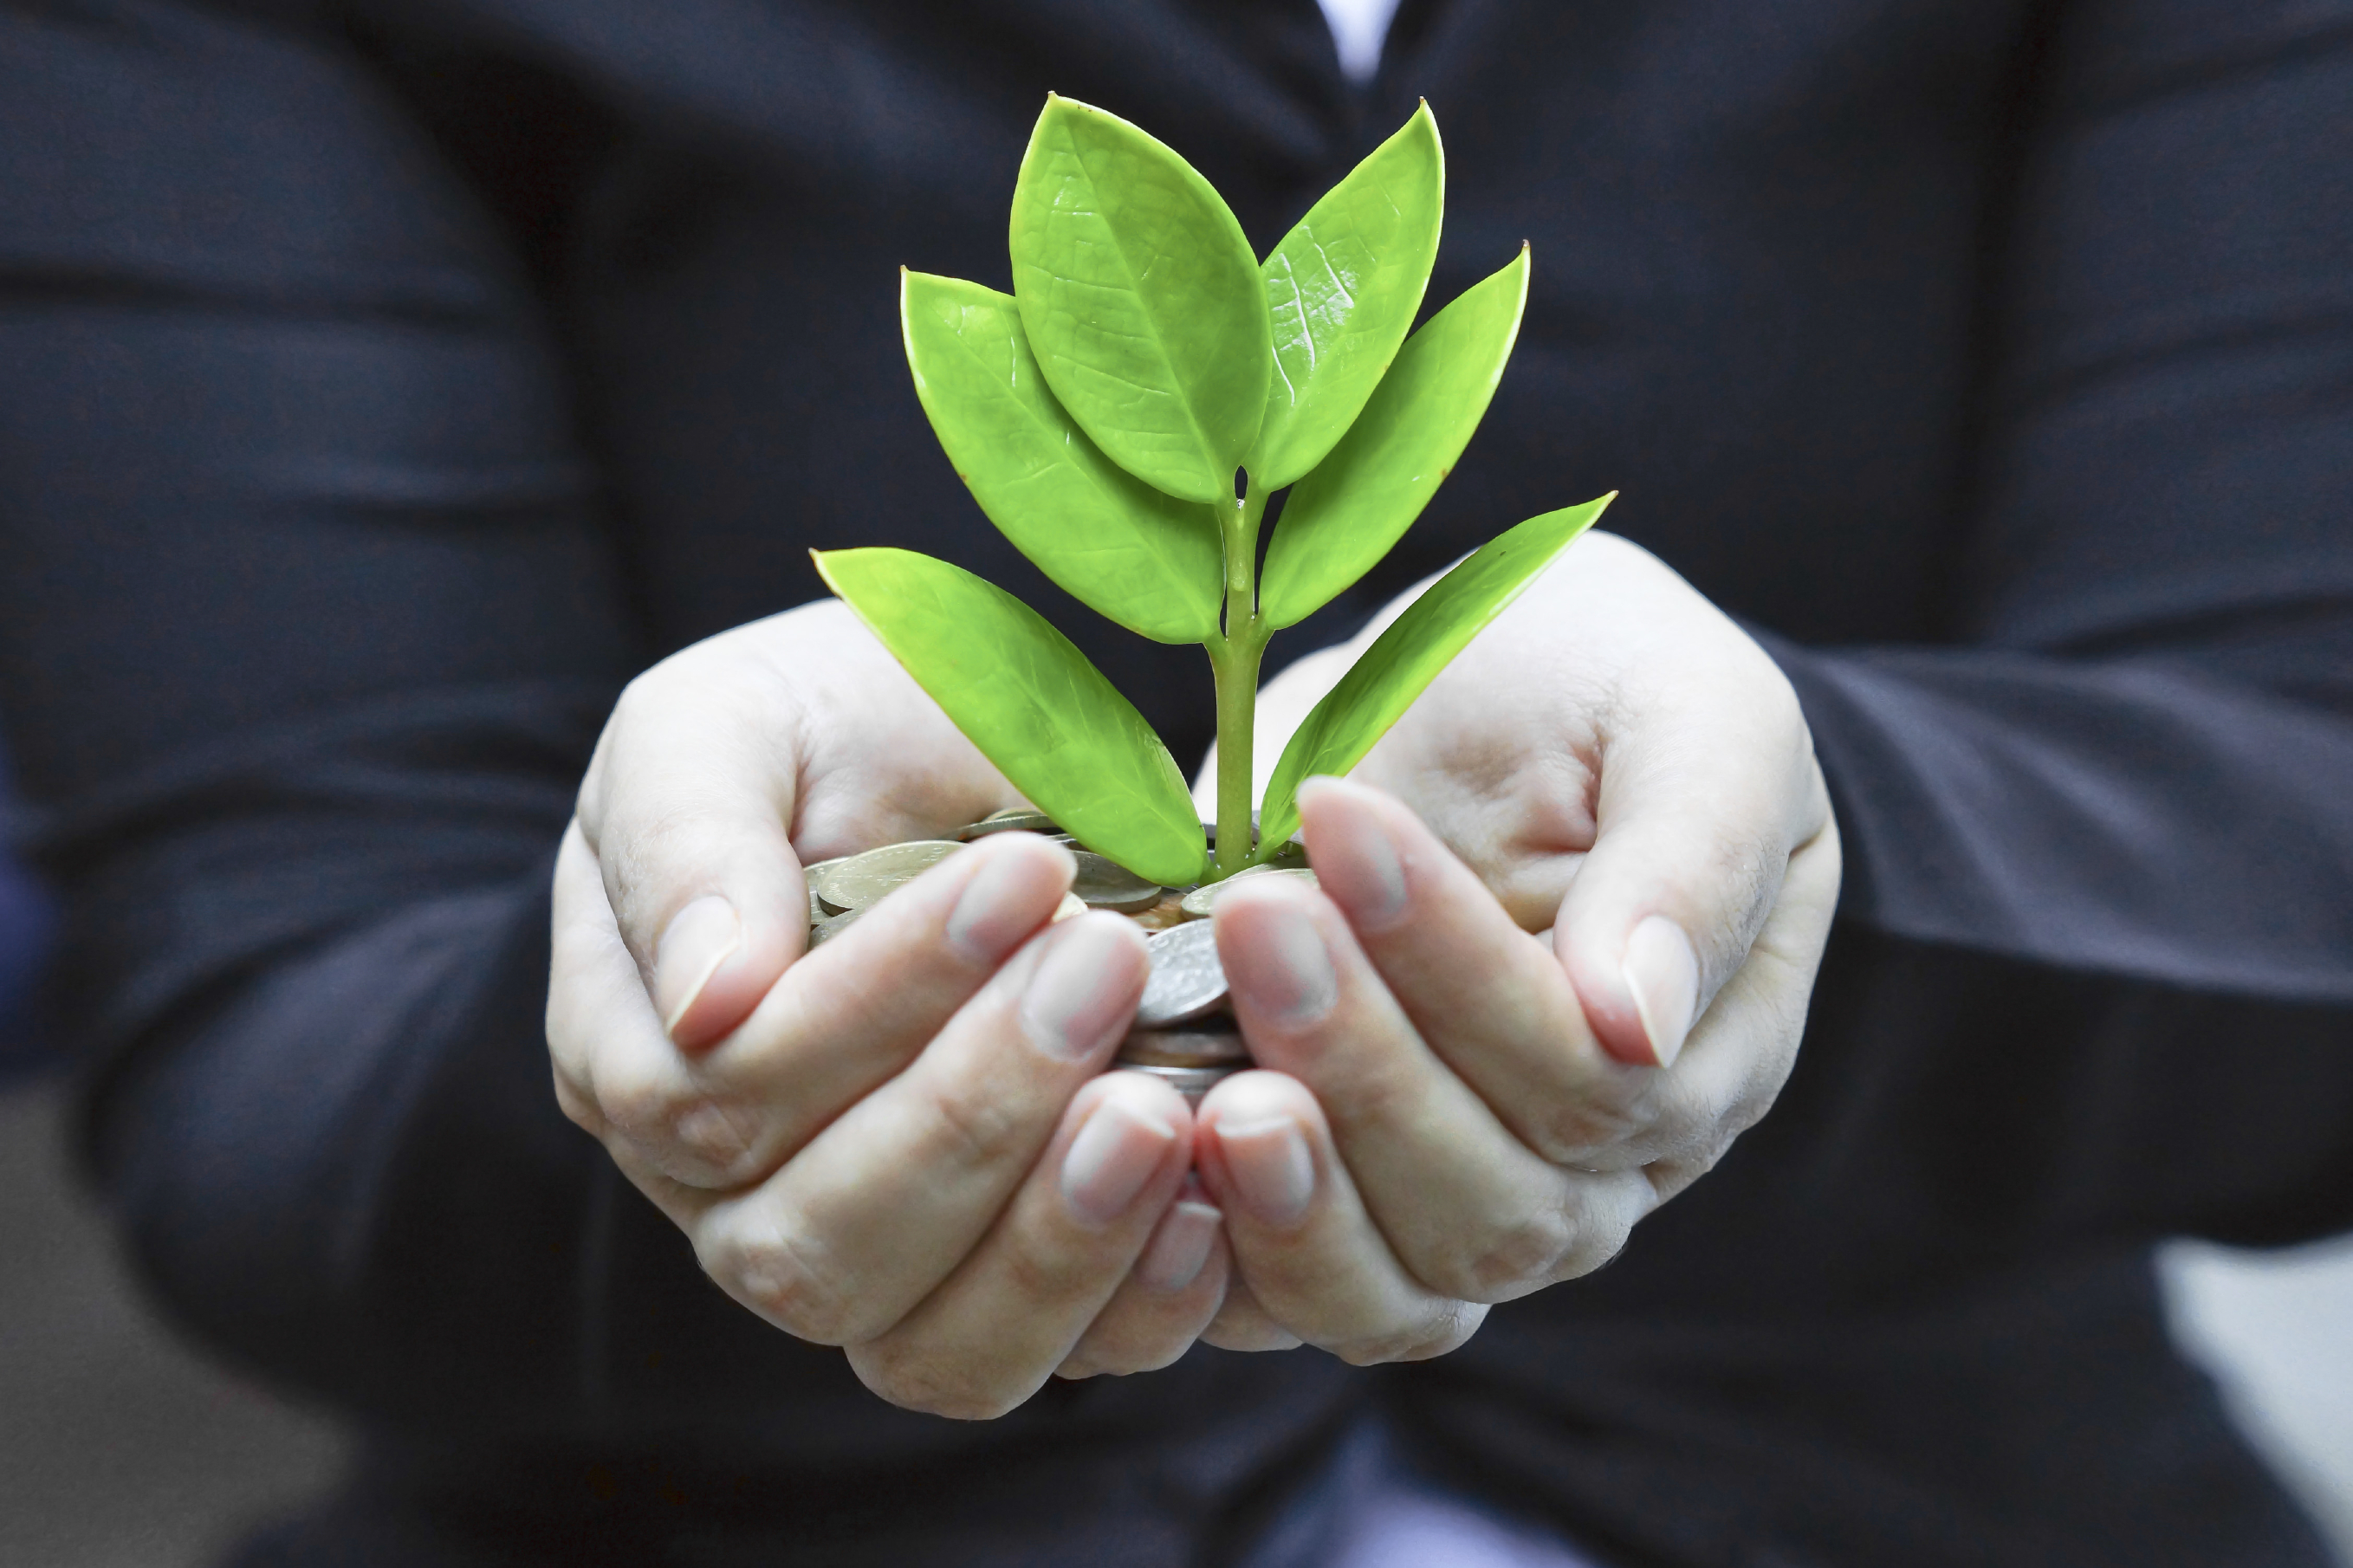 woman's hands holding small green plant